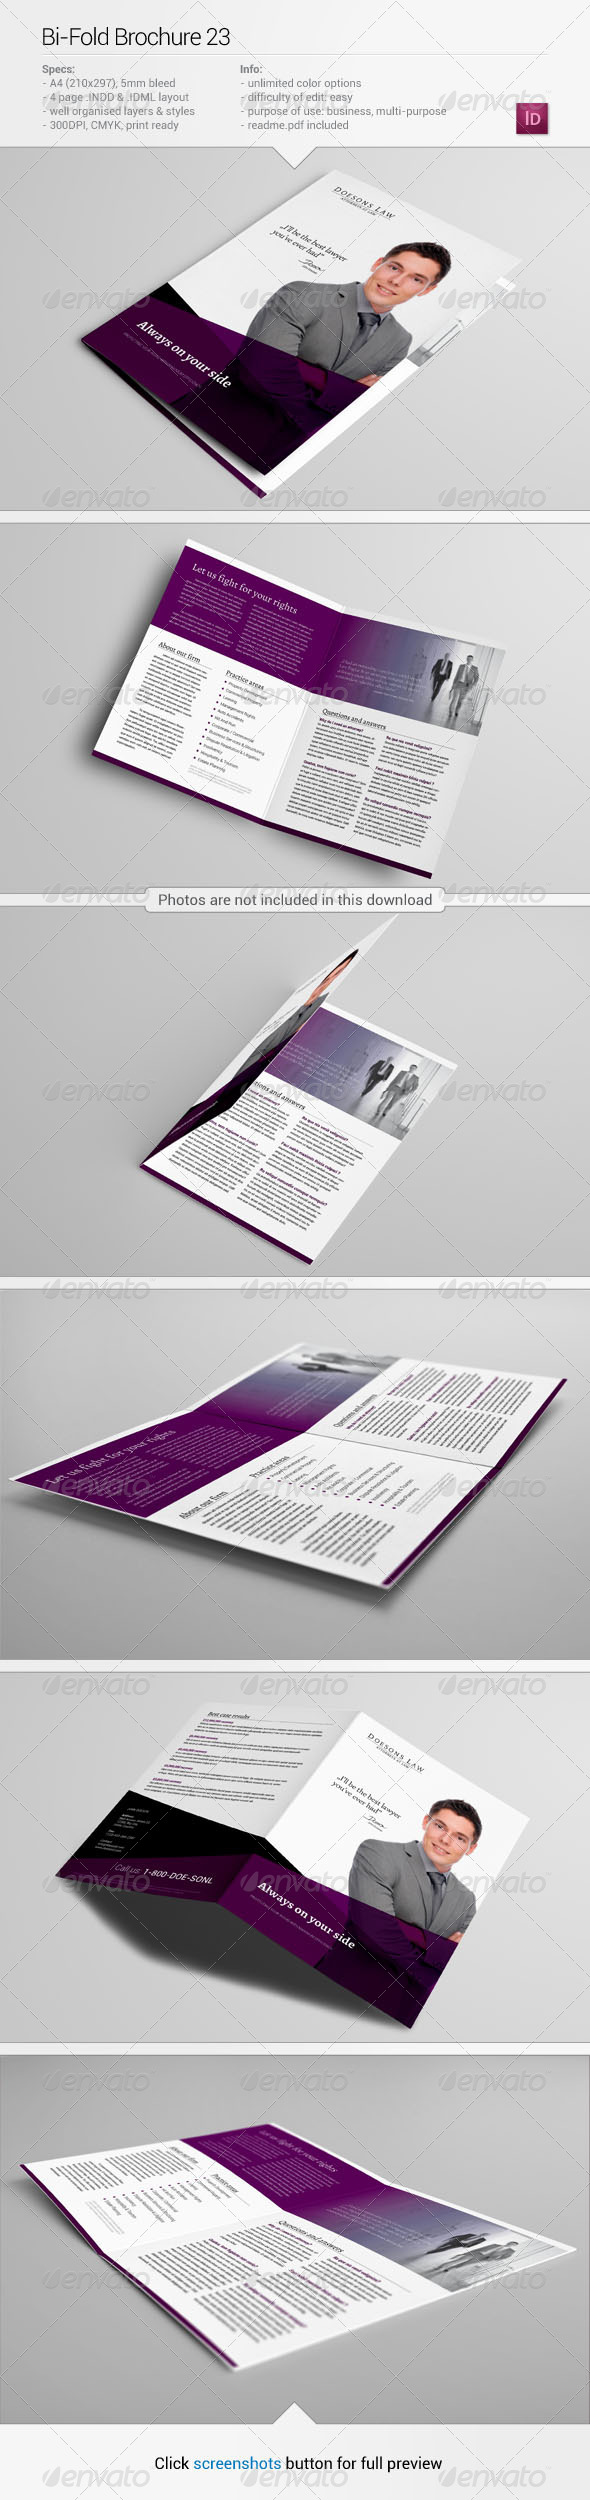 GraphicRiver Bi-Fold Brochure 23 5713058